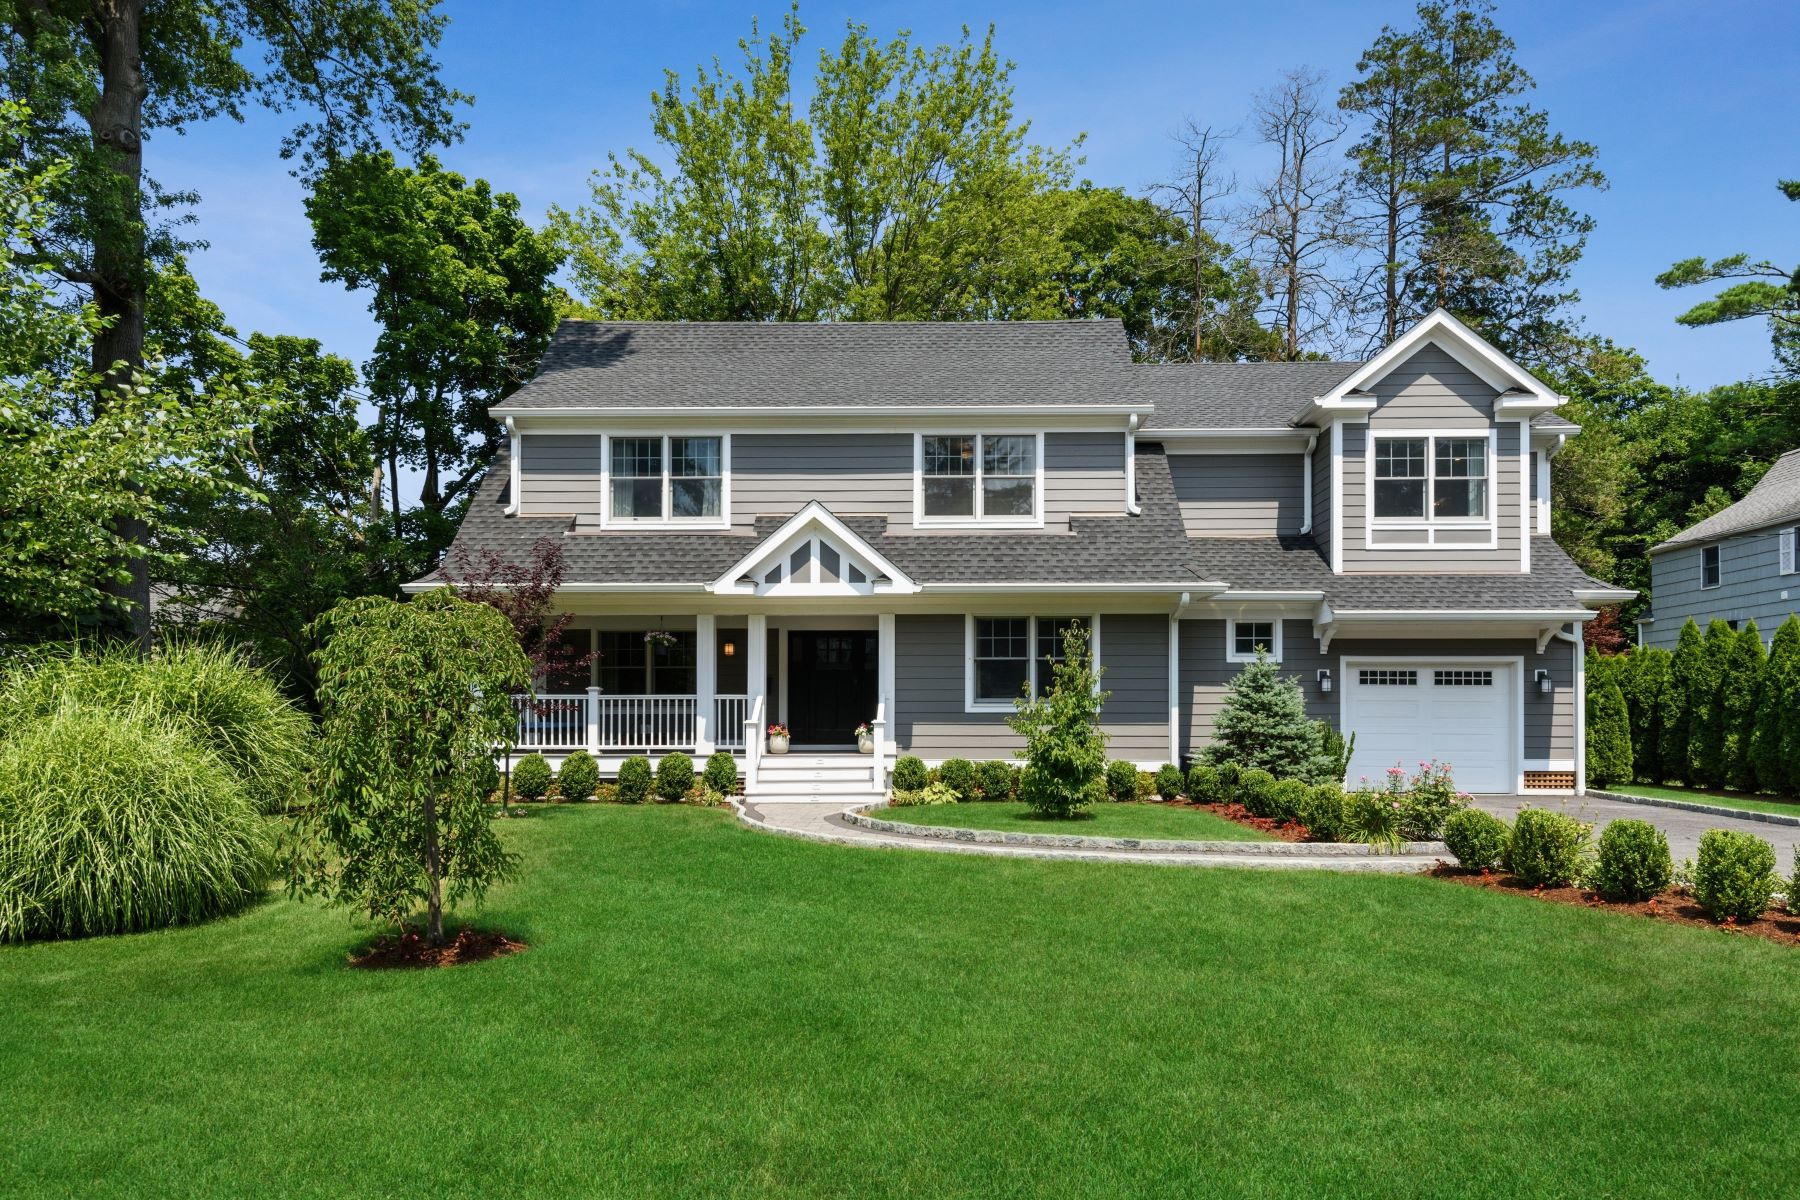 Single Family Homes for Active at 3 Carleon Avenue Larchmont, New York 10538 United States